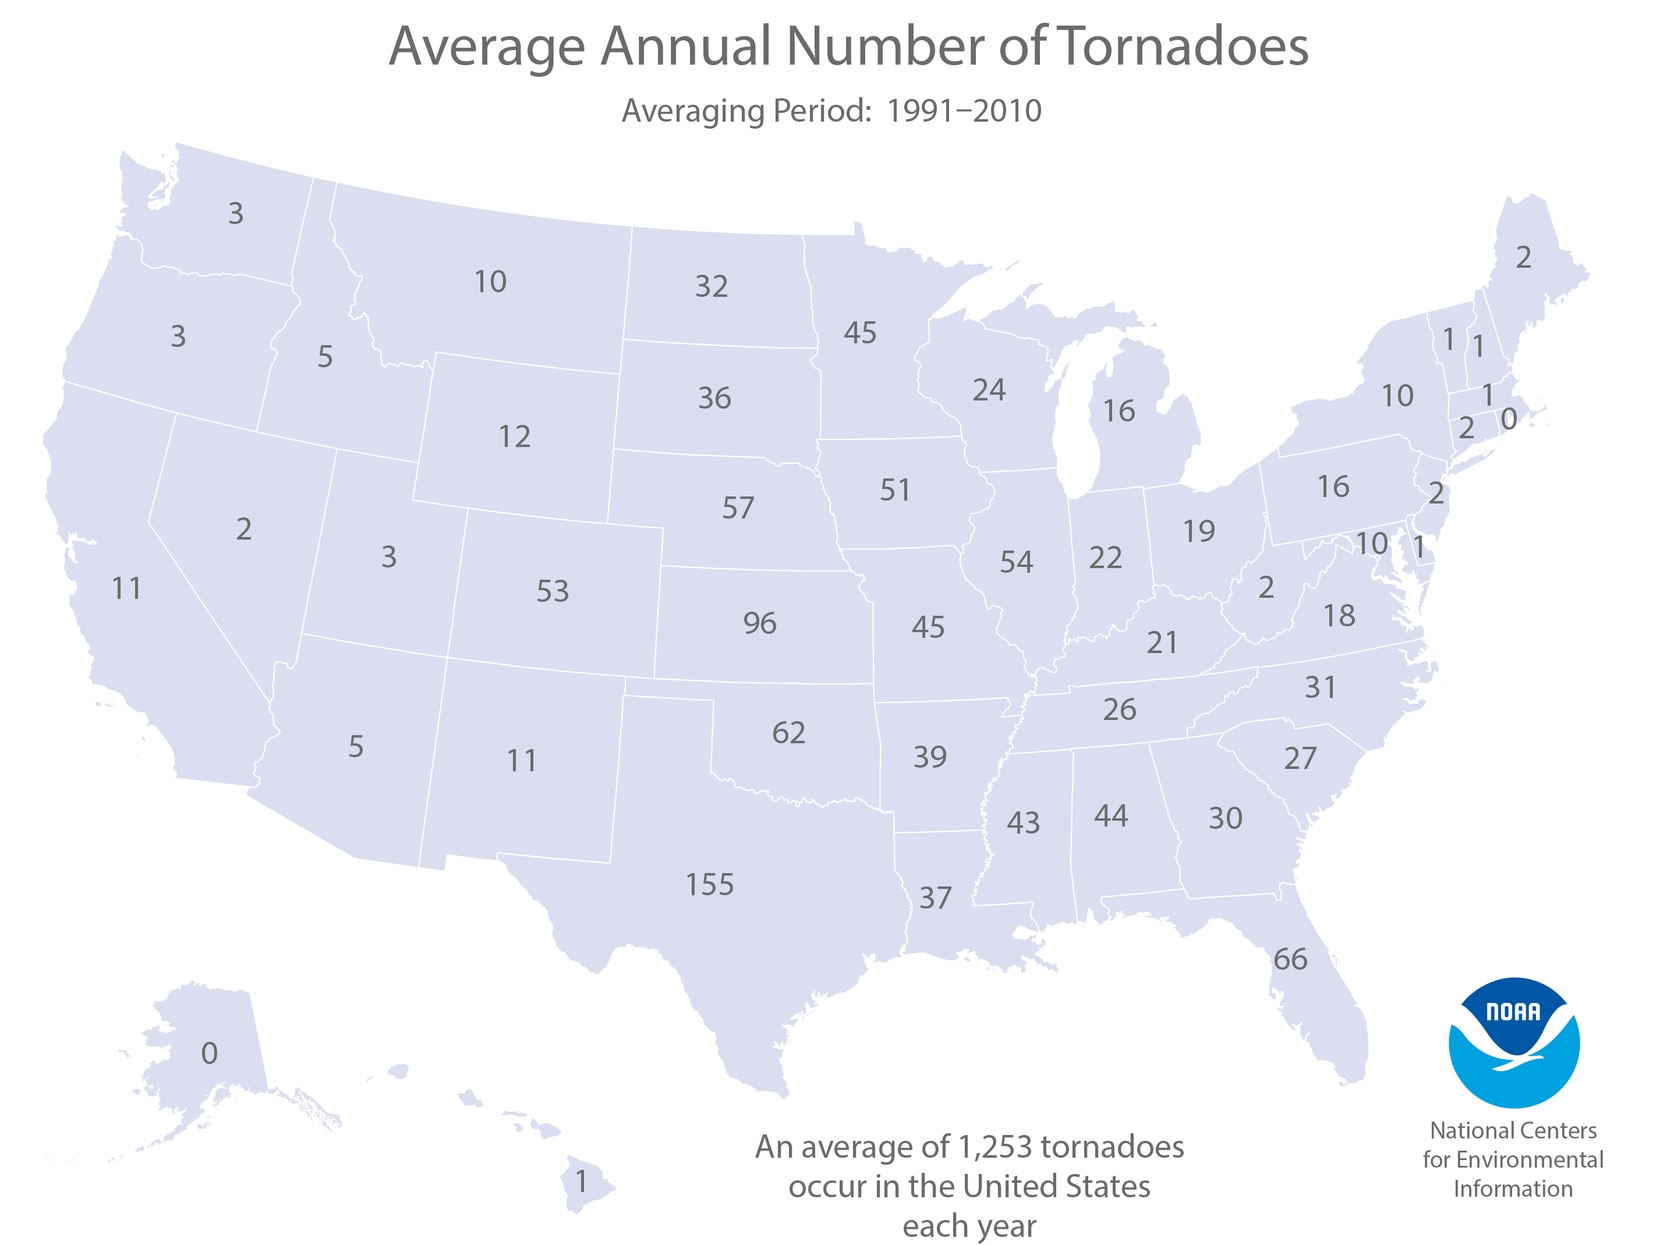 On average, 1,253 tornadoes touch down in the U.S. each year.